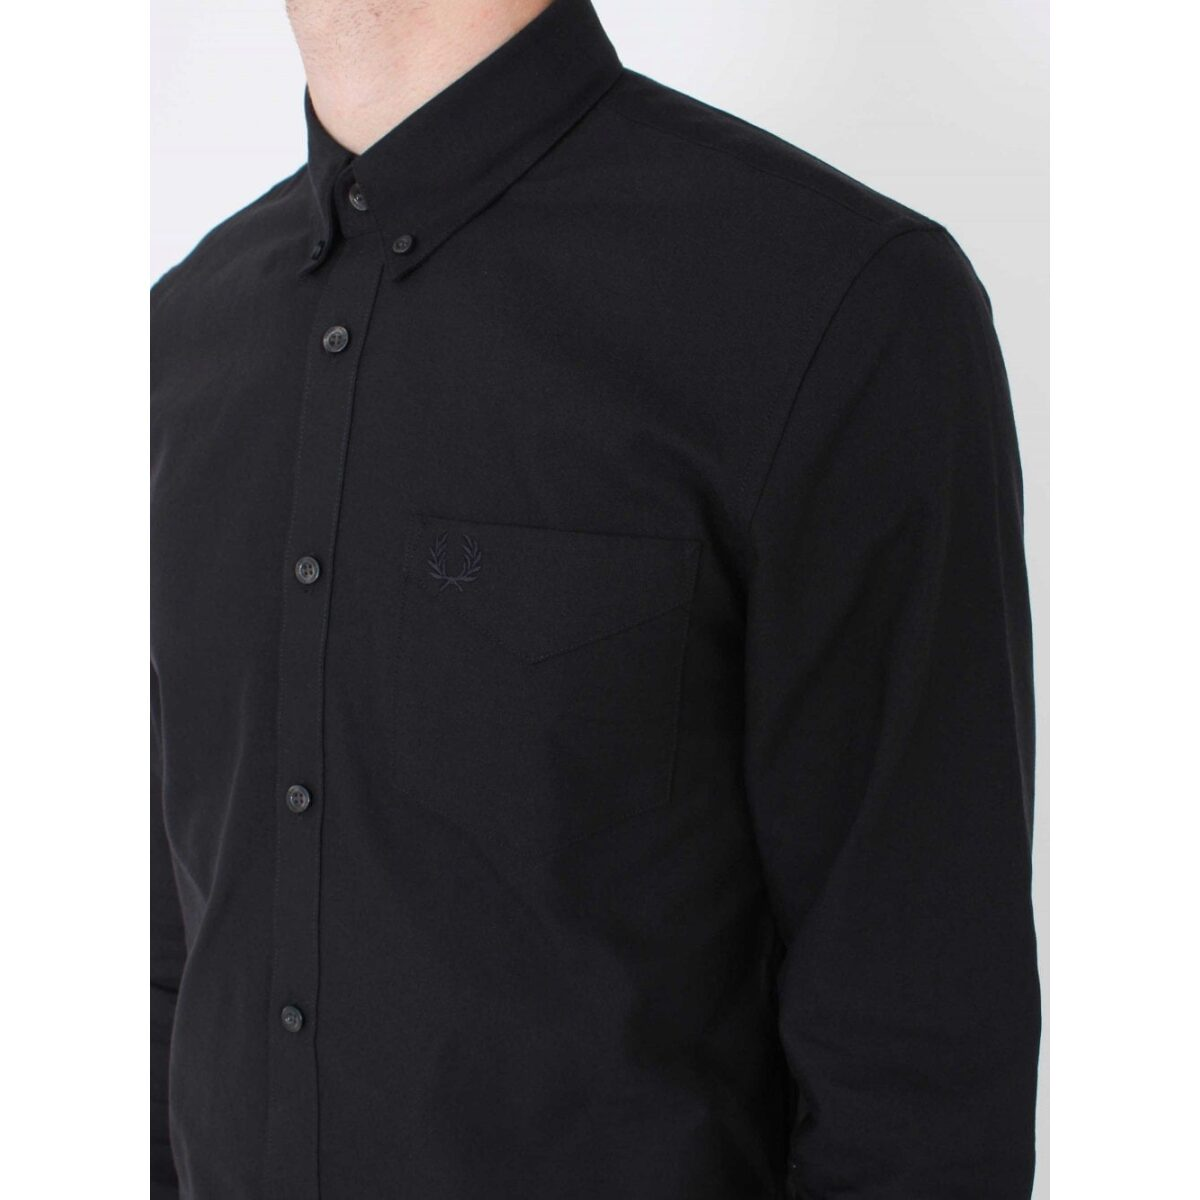 fred perry classic oxford shirt black p34417 545475 image